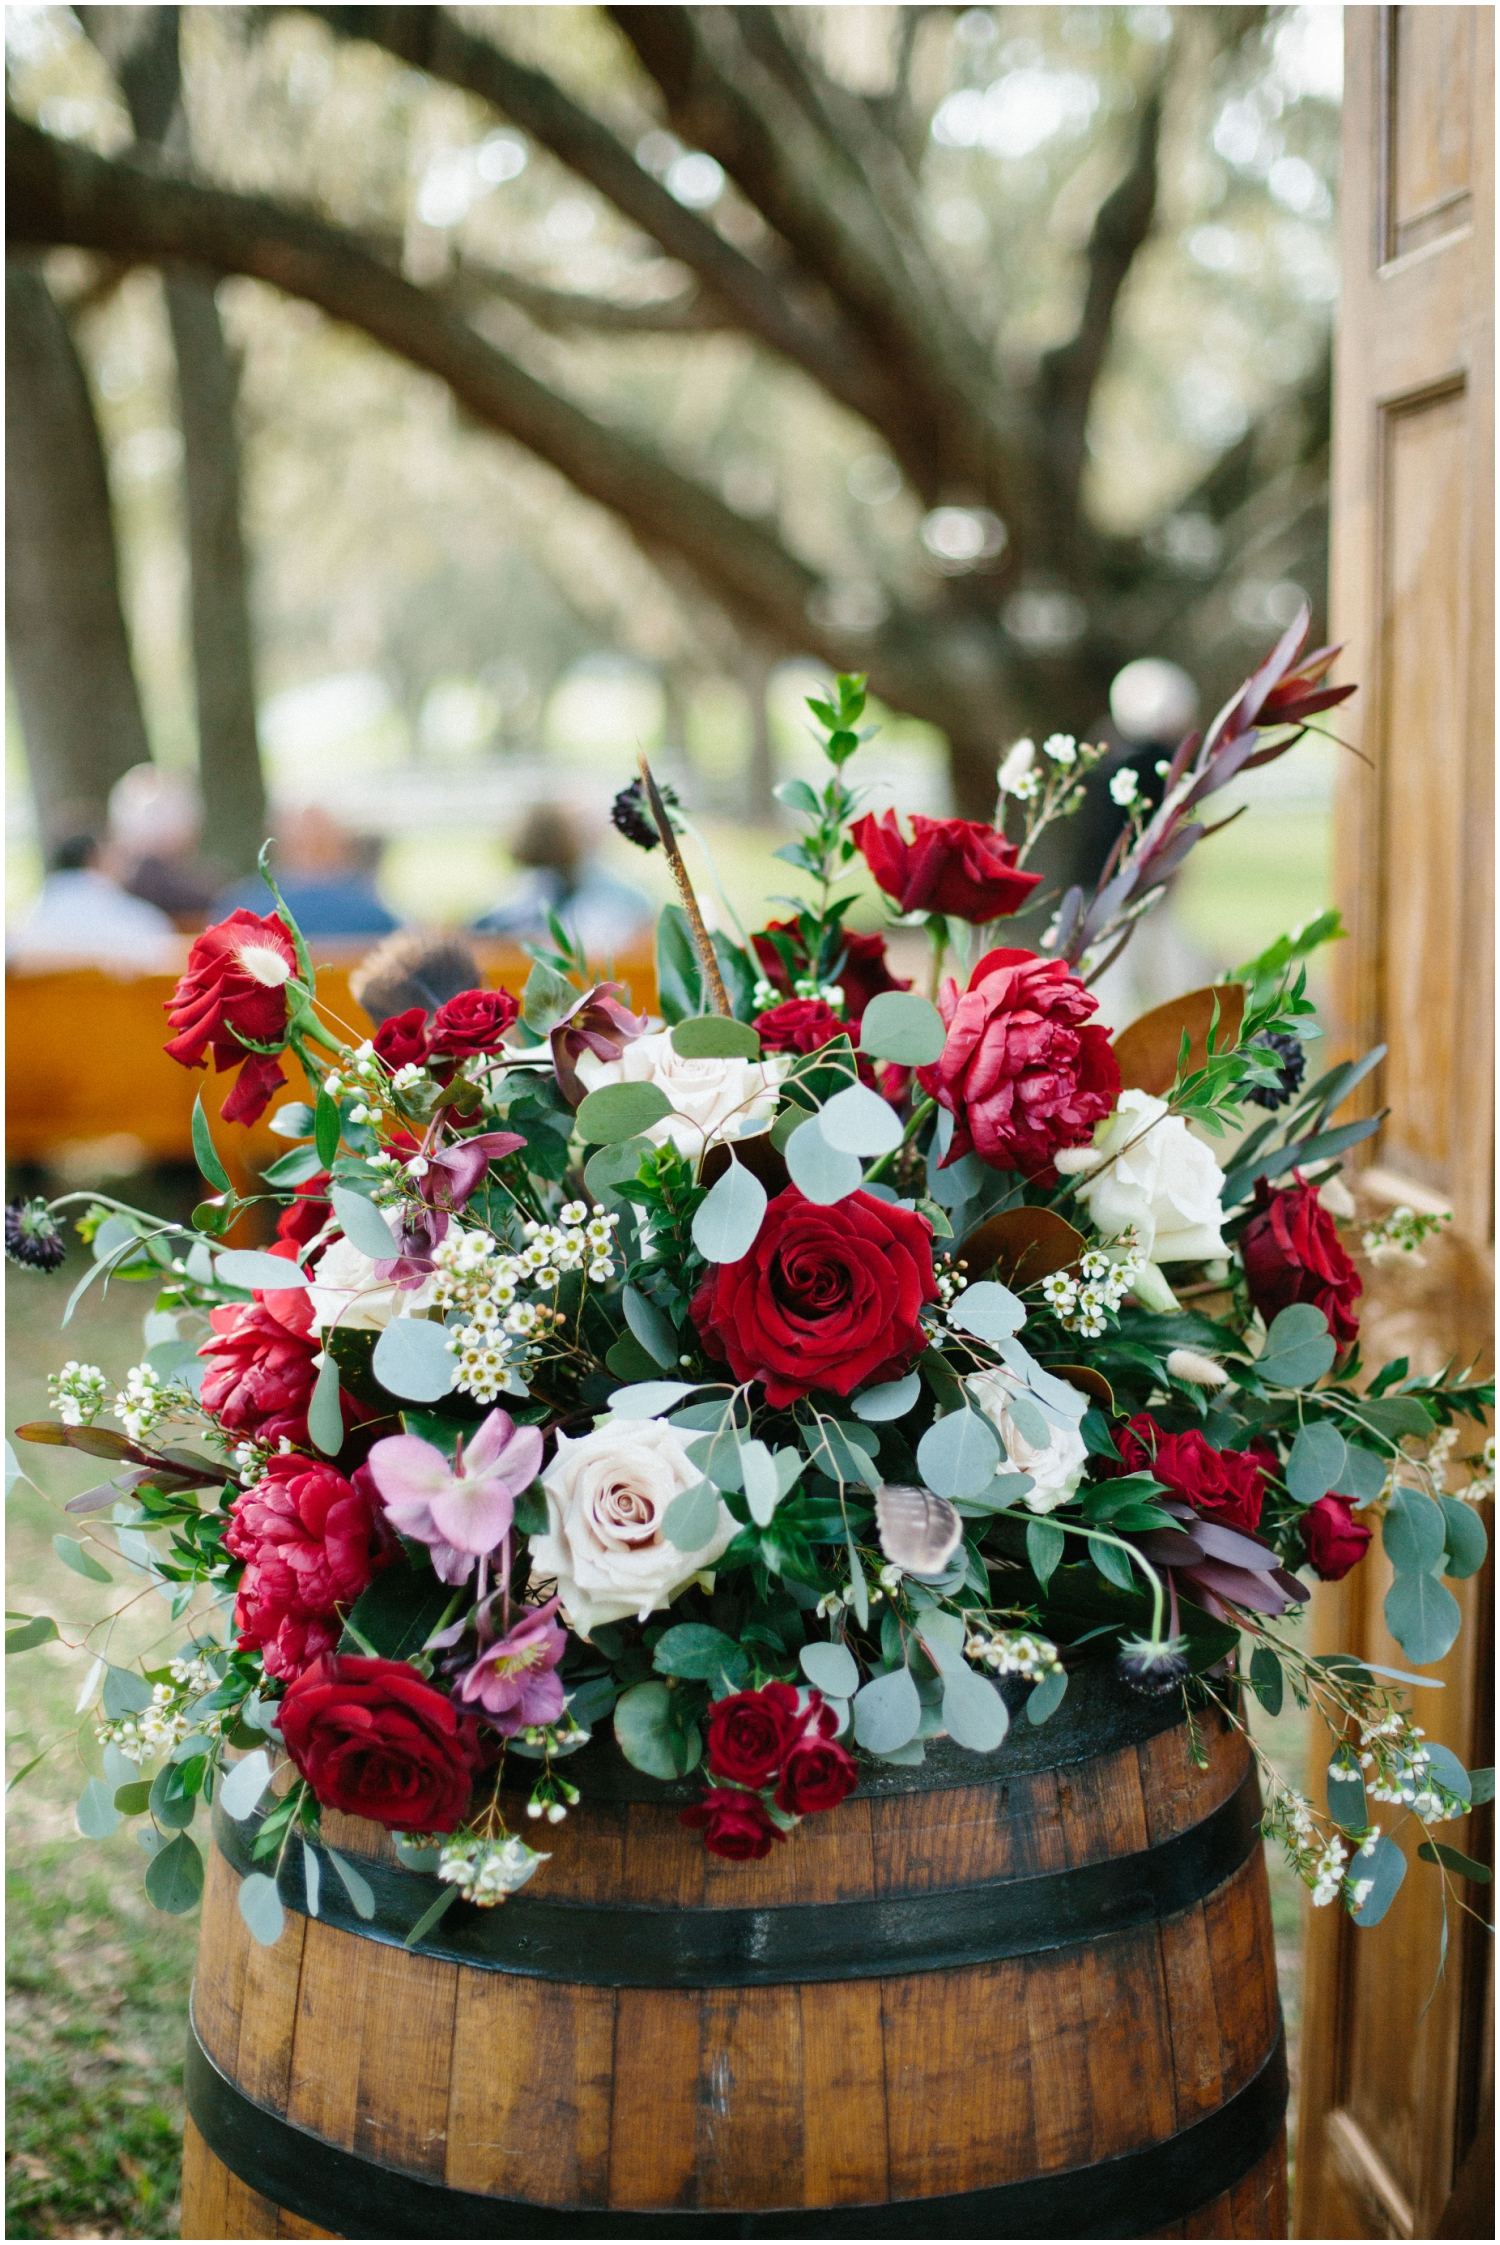 Wedding ceremony decor and floral